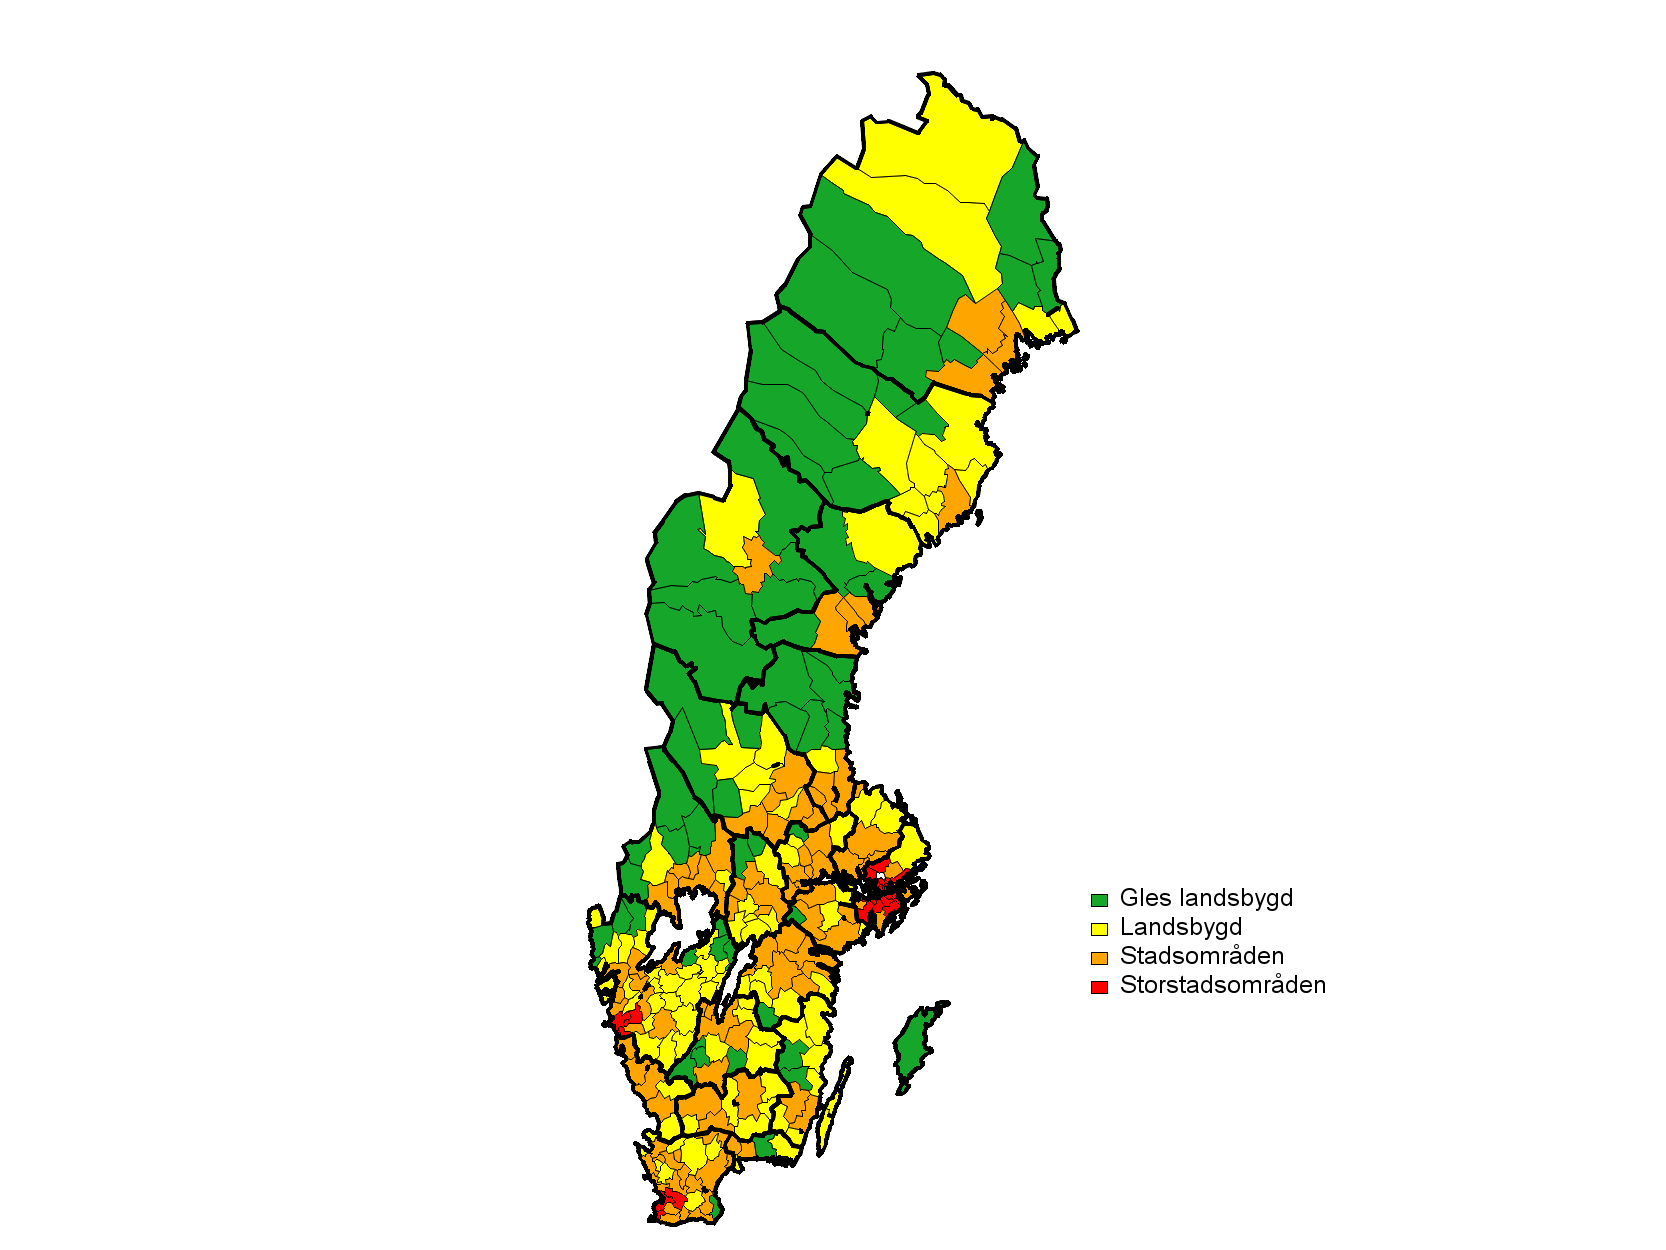 Choropleth map of Fyrgradig